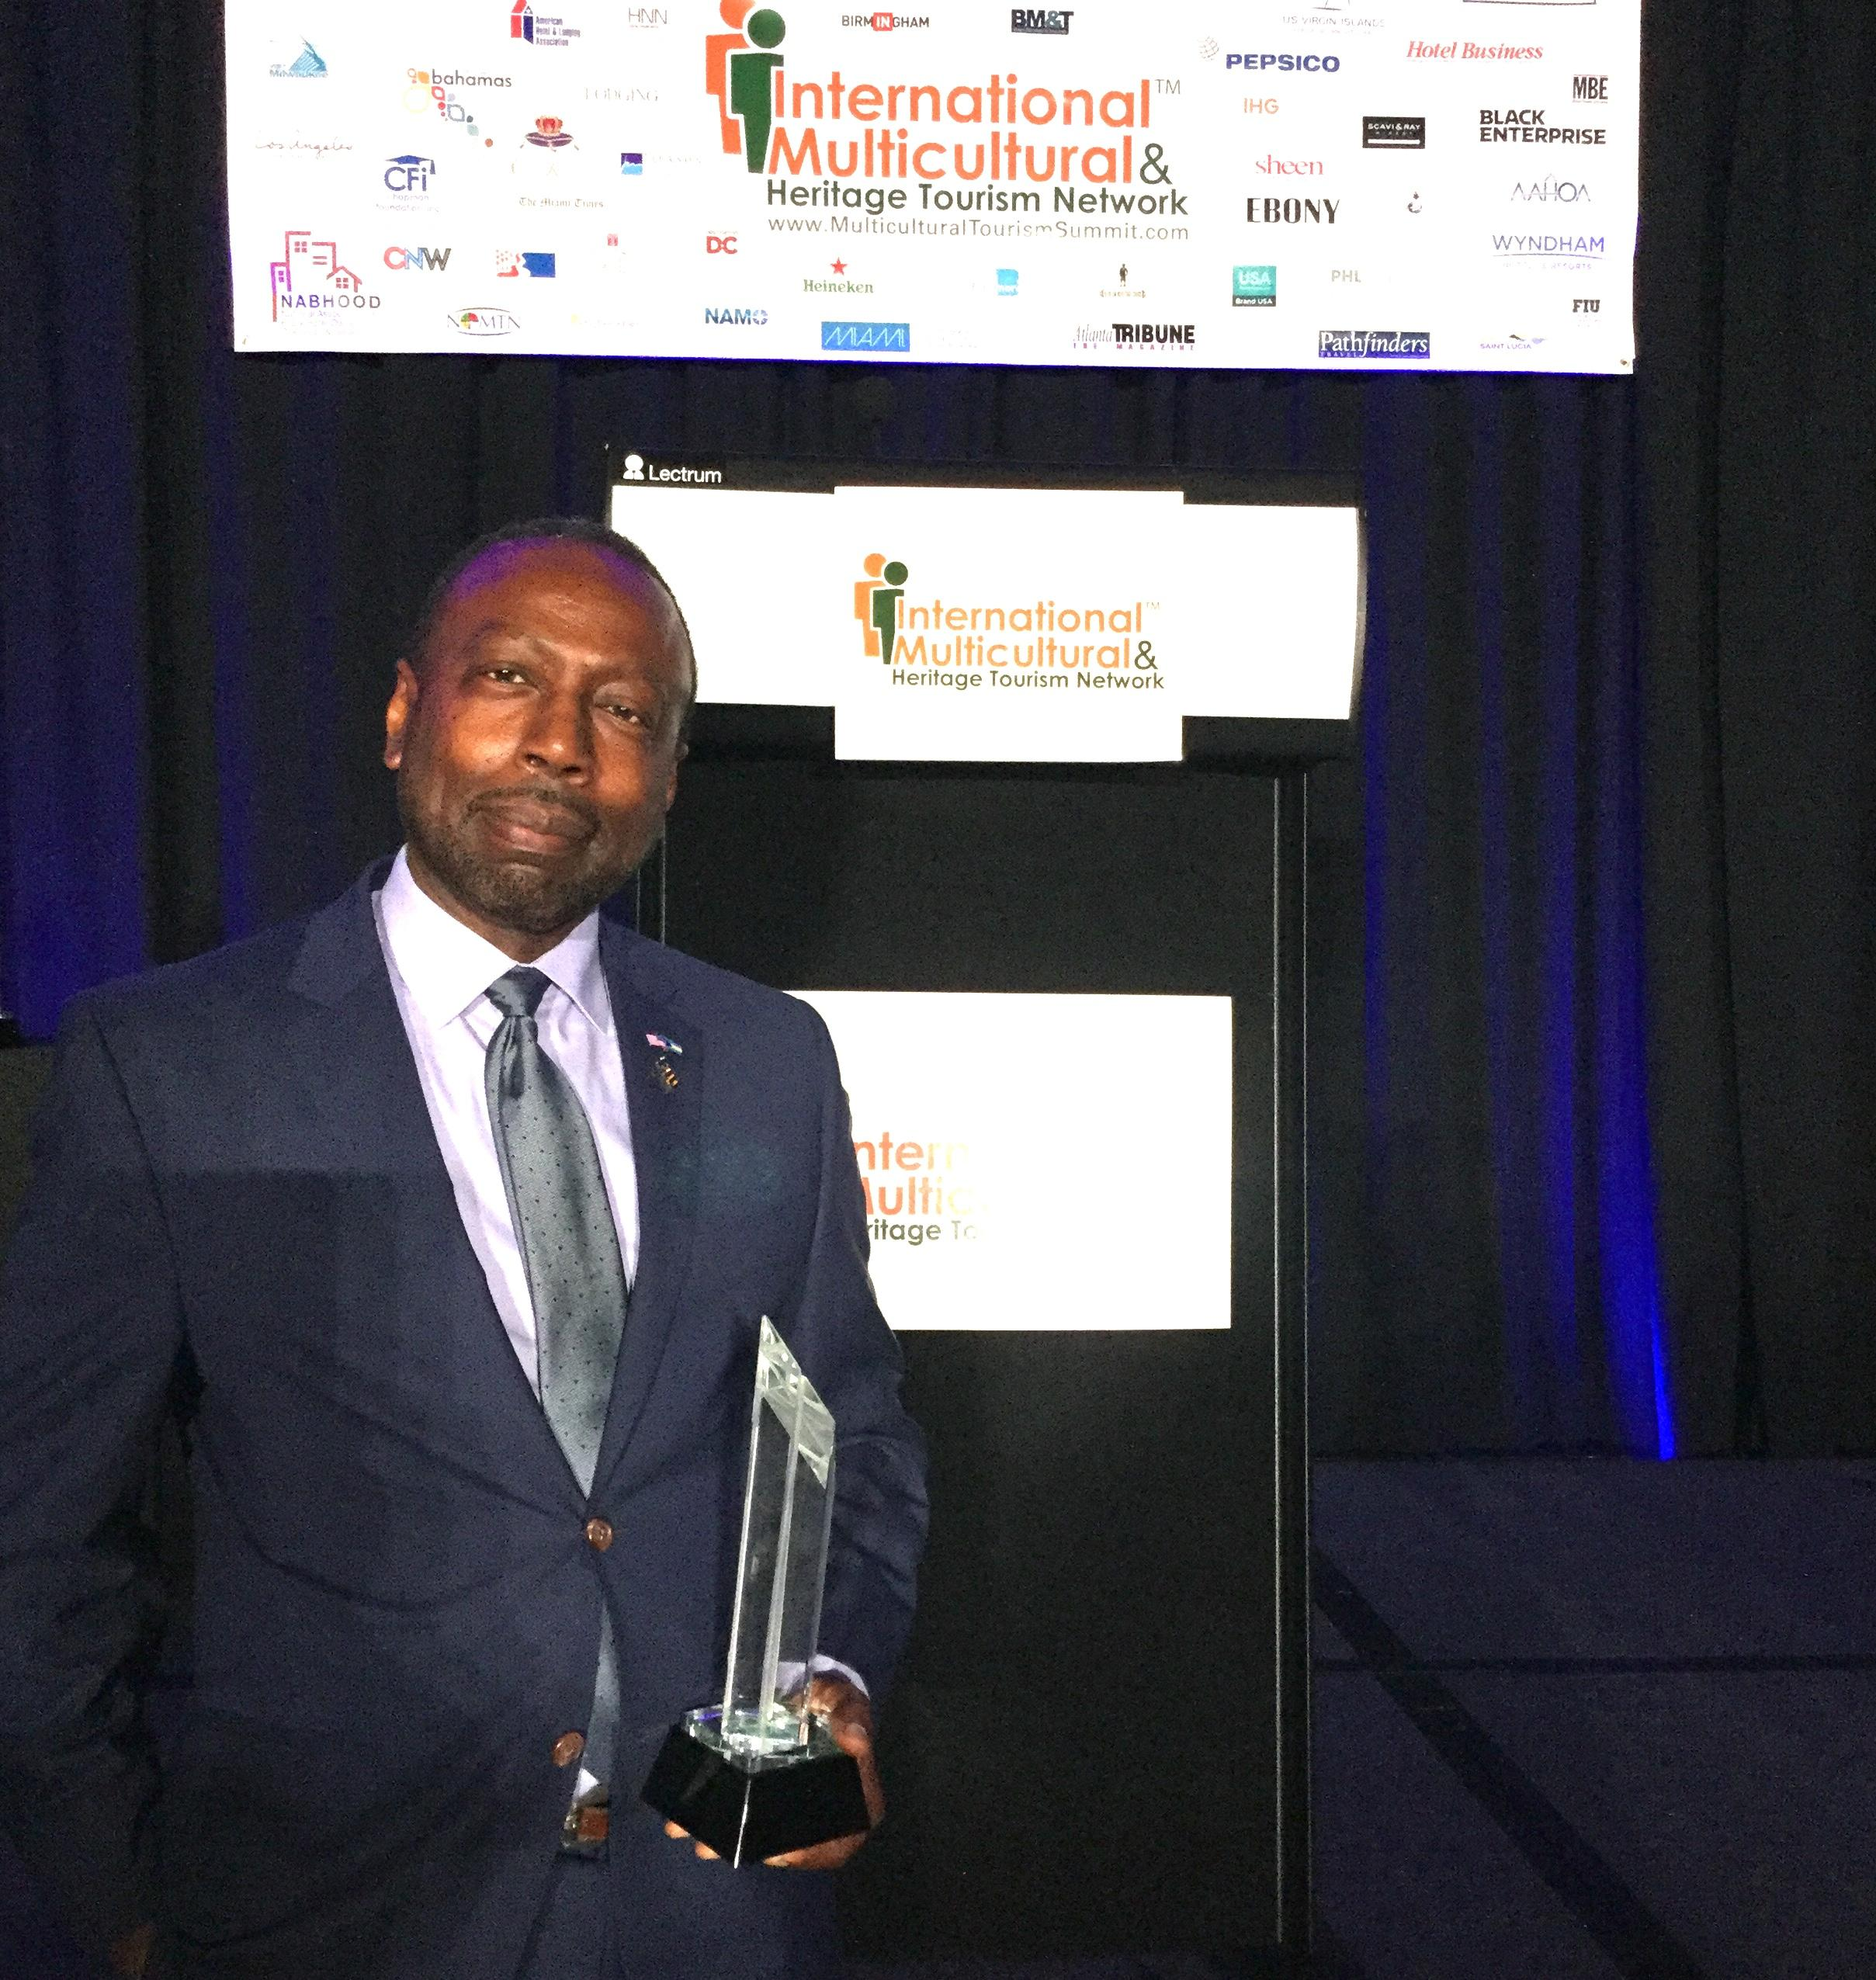 Linville Johnson, responsible for the Multicultural Department of The Bahamas Ministry of Tourism and Aviation is pictured with his Apex Award, received from Black Meetings and Tourism's Magazine for his outstanding contributions to the Hospitality and To